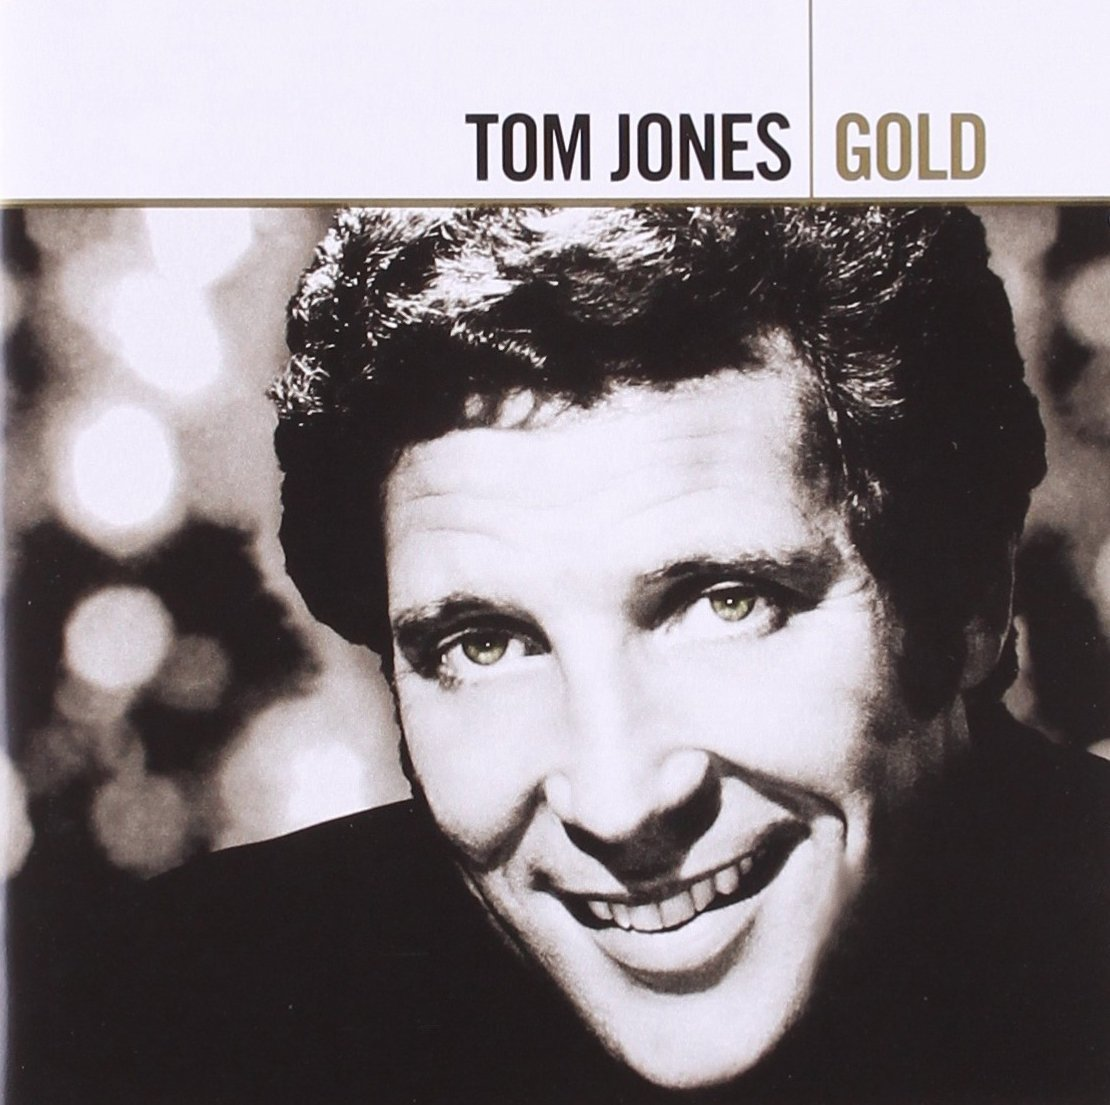 TOM JONES - GOLD (2 CD) (CD)